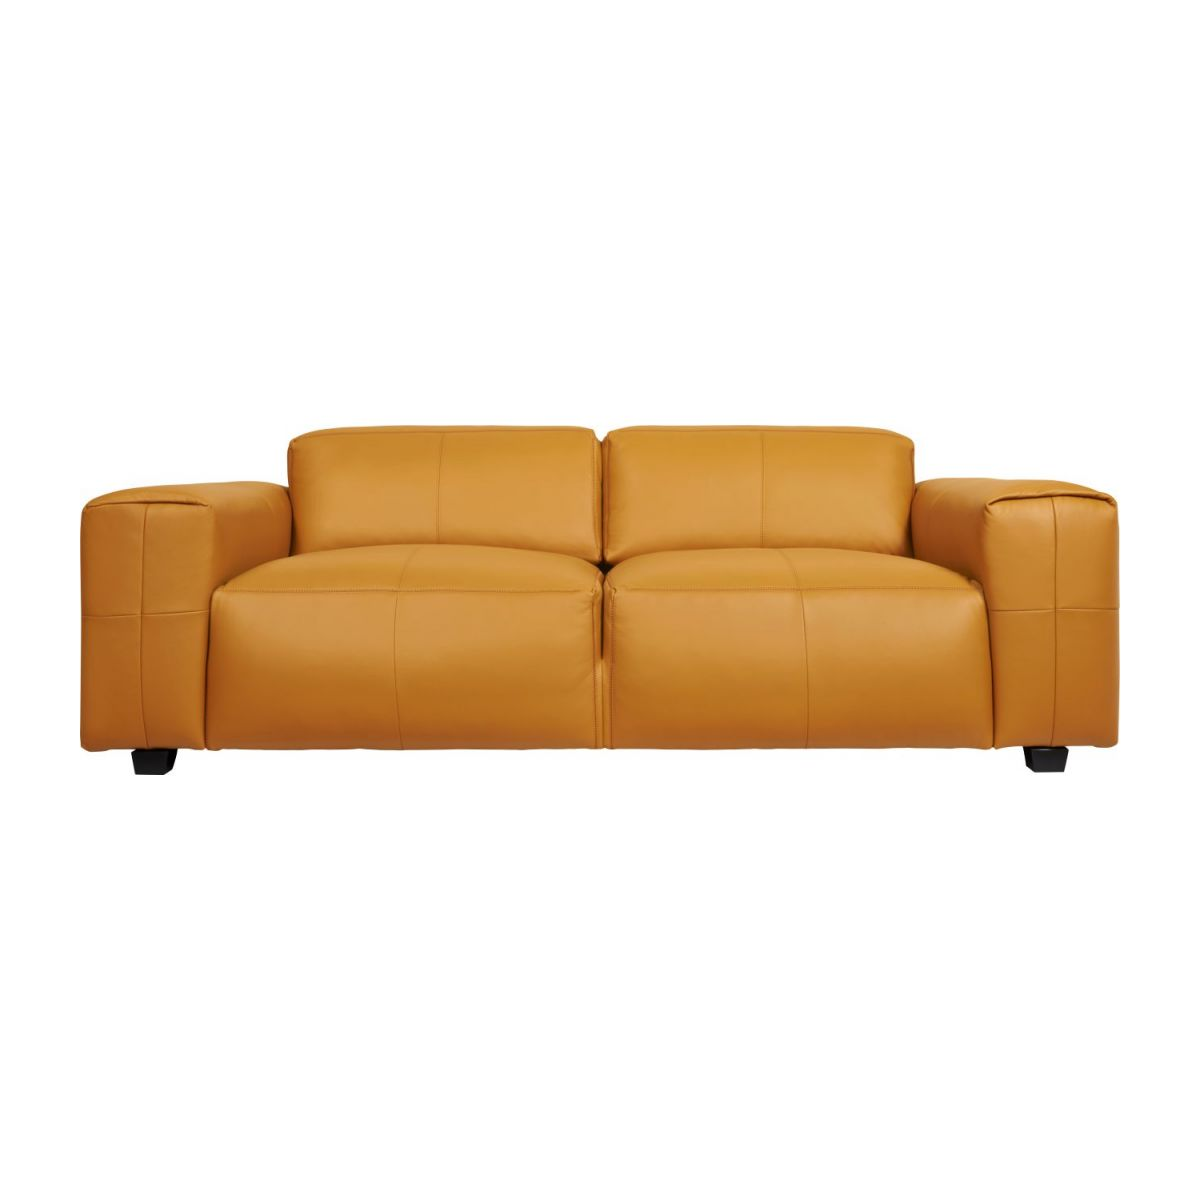 3 seater sofa in Savoy semi-aniline leather, cognac n°3